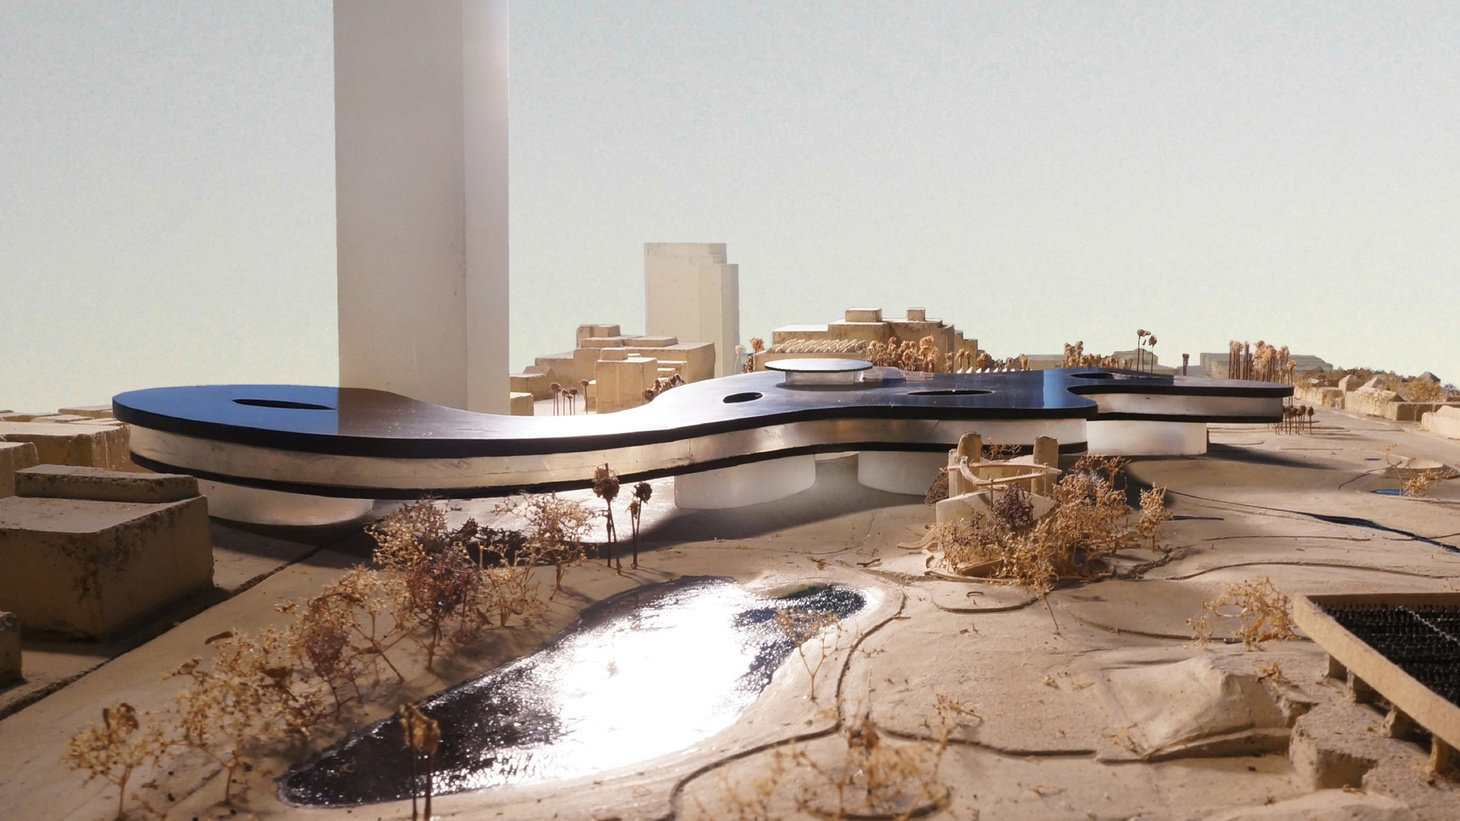 """The Los Angeles County Museum of Art is moving forward with a plan to replace four buildings on its campus with a new building designed by Swiss architect Peter Zumthor. Critics say the building is dark, monolithic, and would disrupt the flow of Wilshire Boulevard. Others describe it as """"restrained"""" and """"calm"""" and a good fit for an institution like LACMA."""